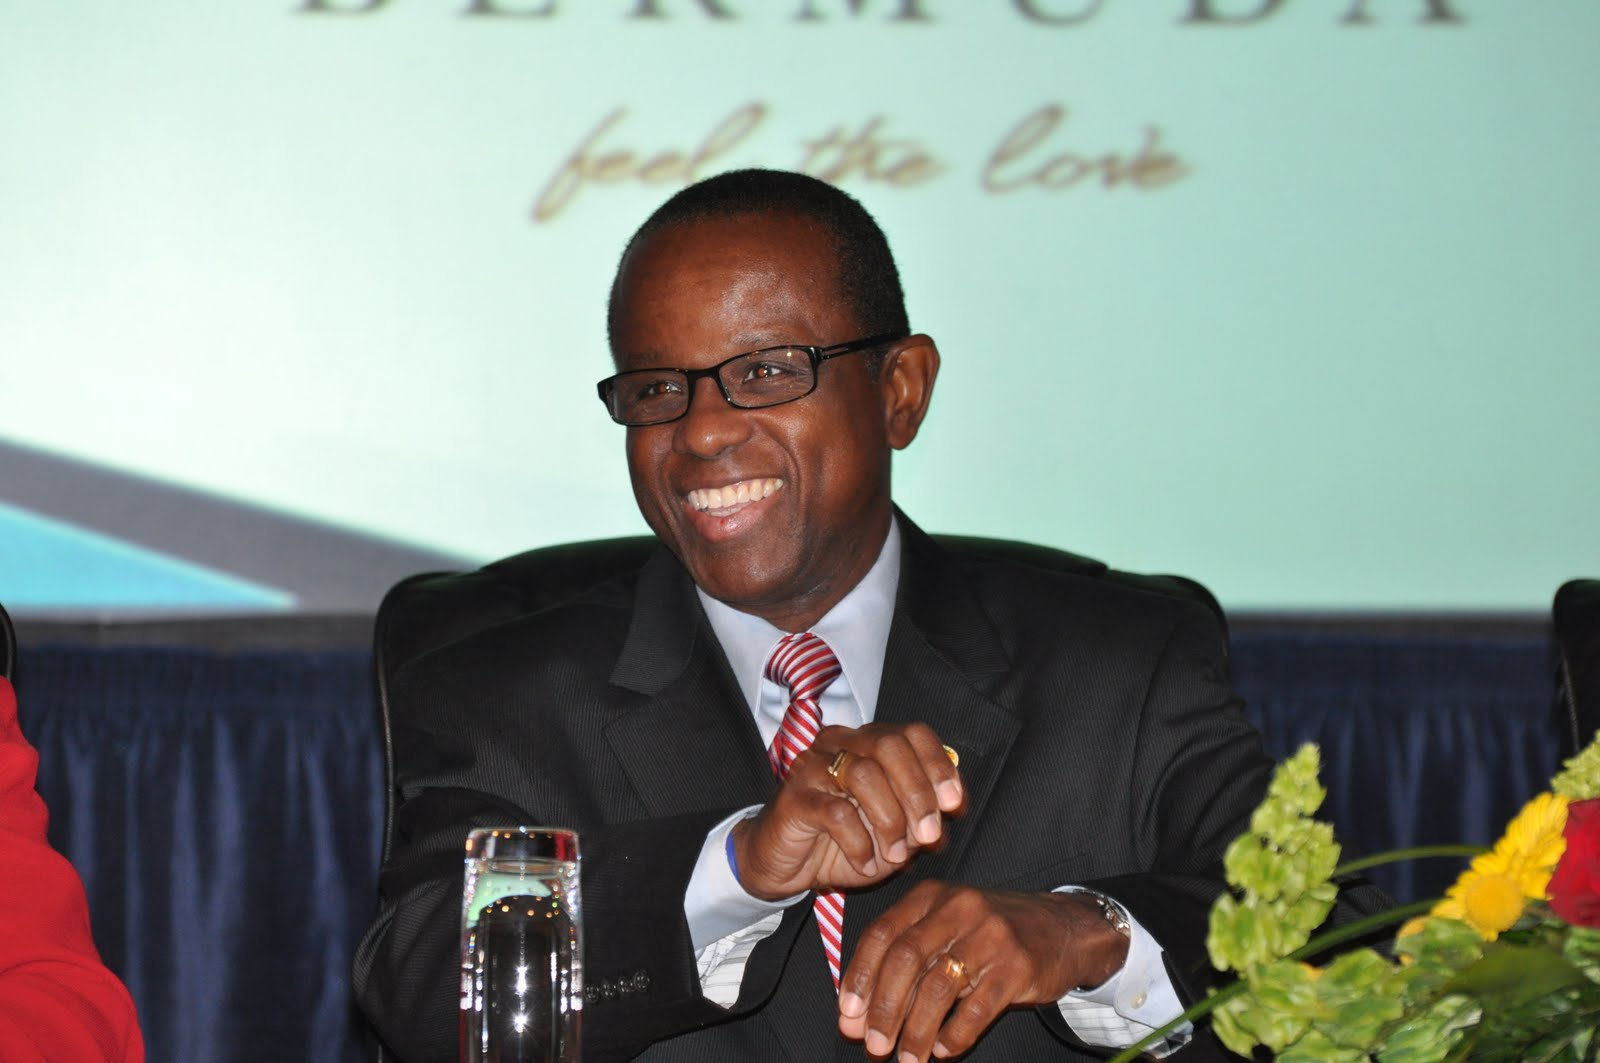 Secretary General of the Caribbean Tourism Organization (CTO) Hugh Riley